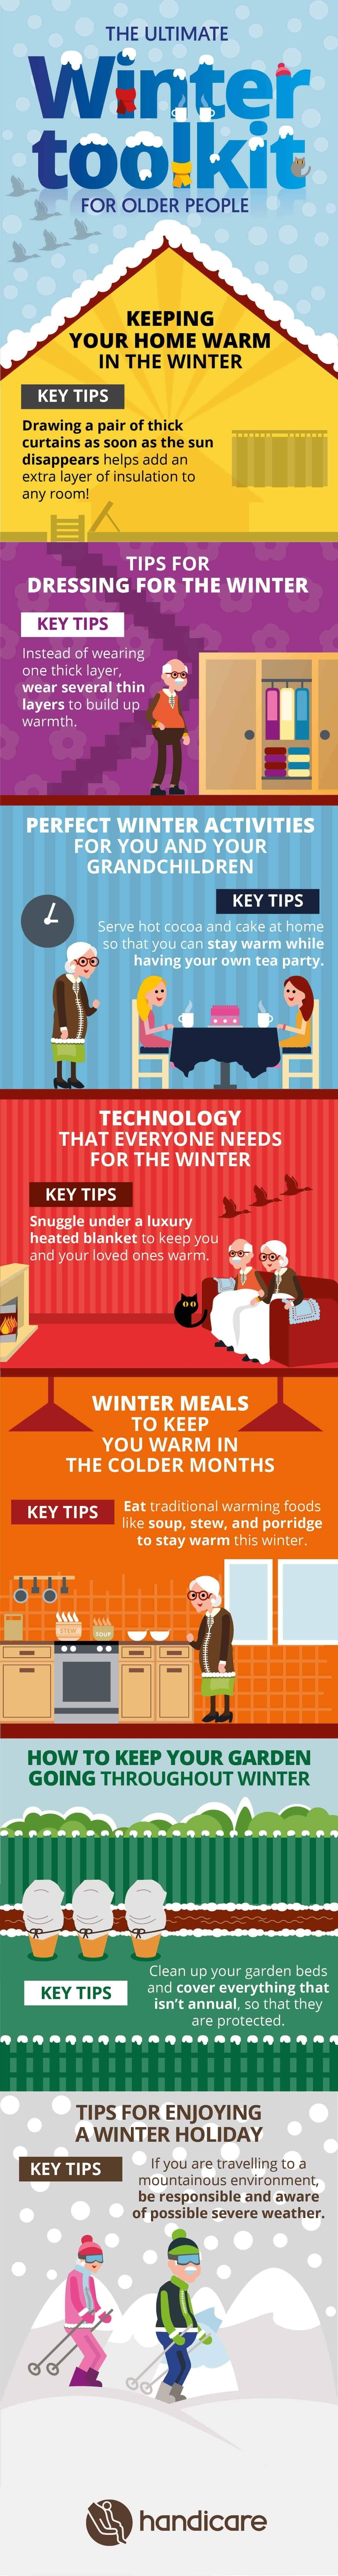 The ultimate toolkit for elderly individuals in winter #infographic